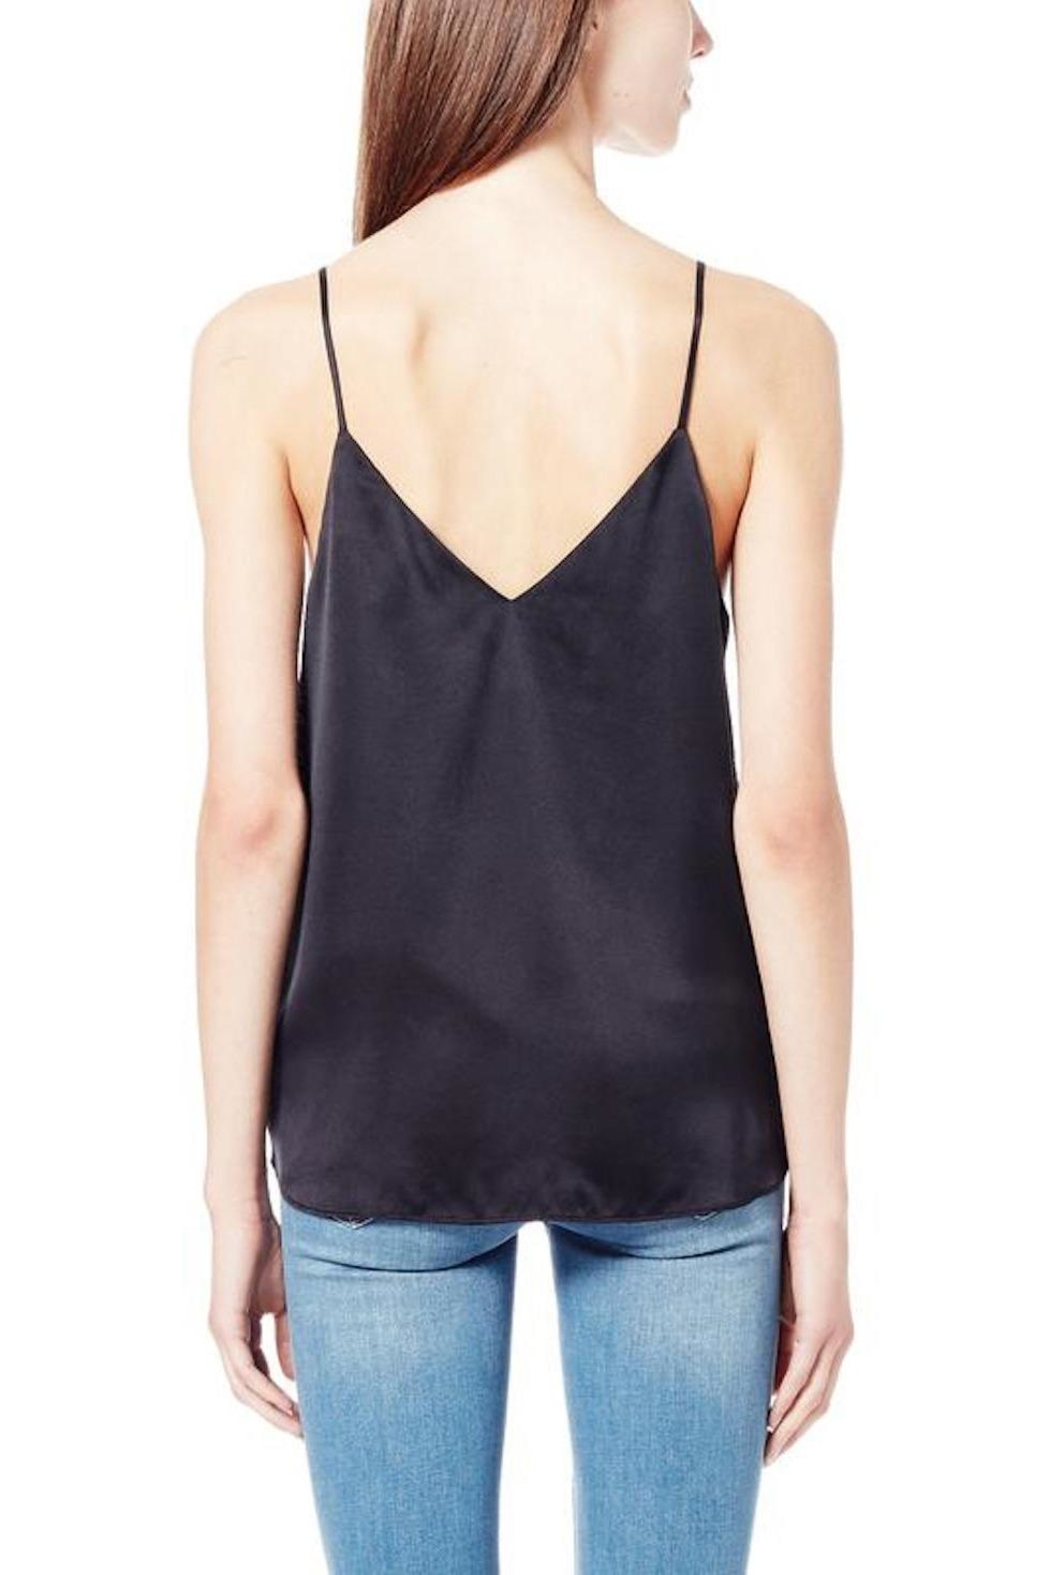 Cami NYC The Arlo Top - Front Full Image